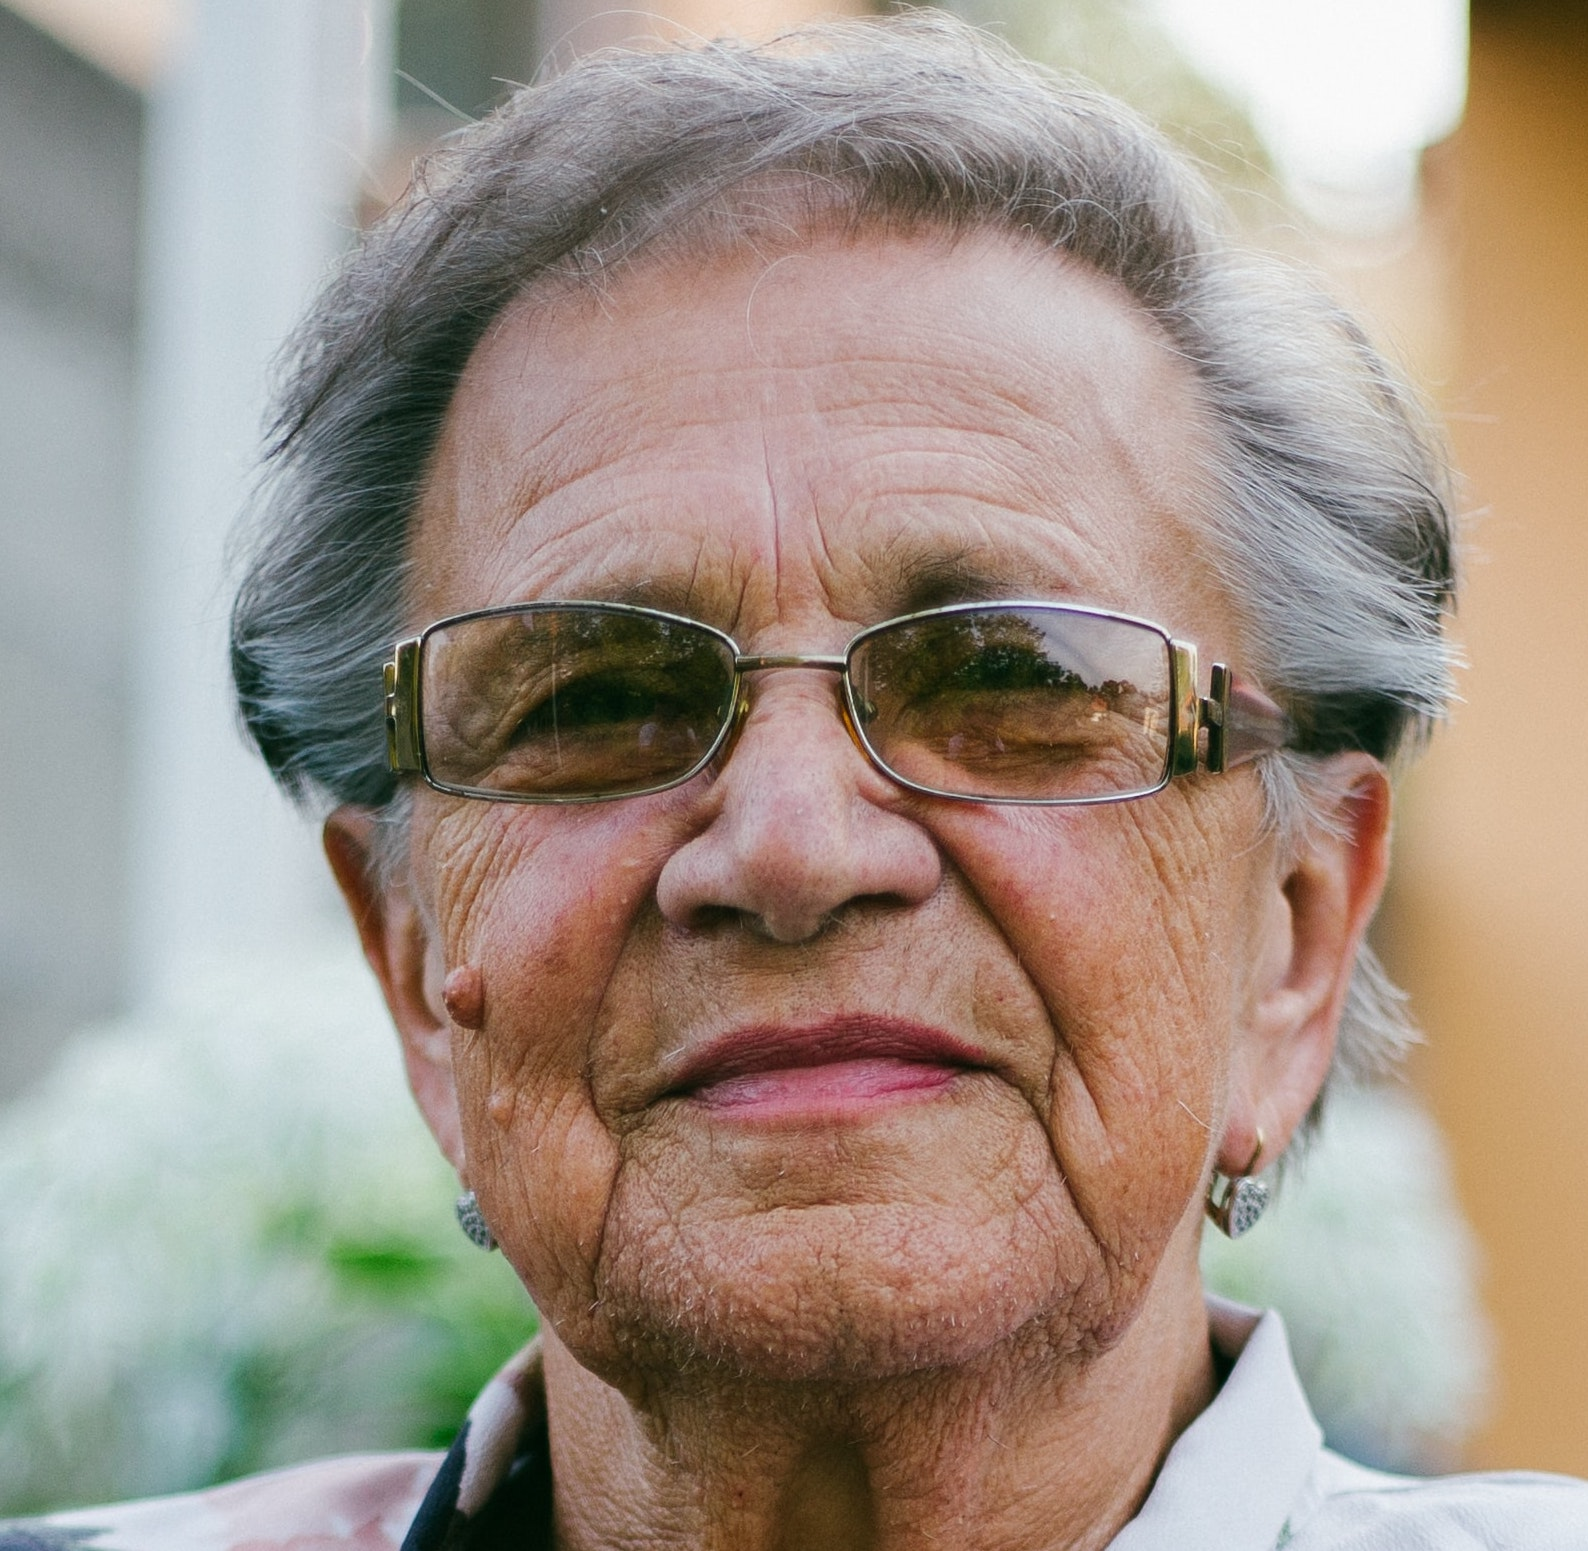 Marion, 82